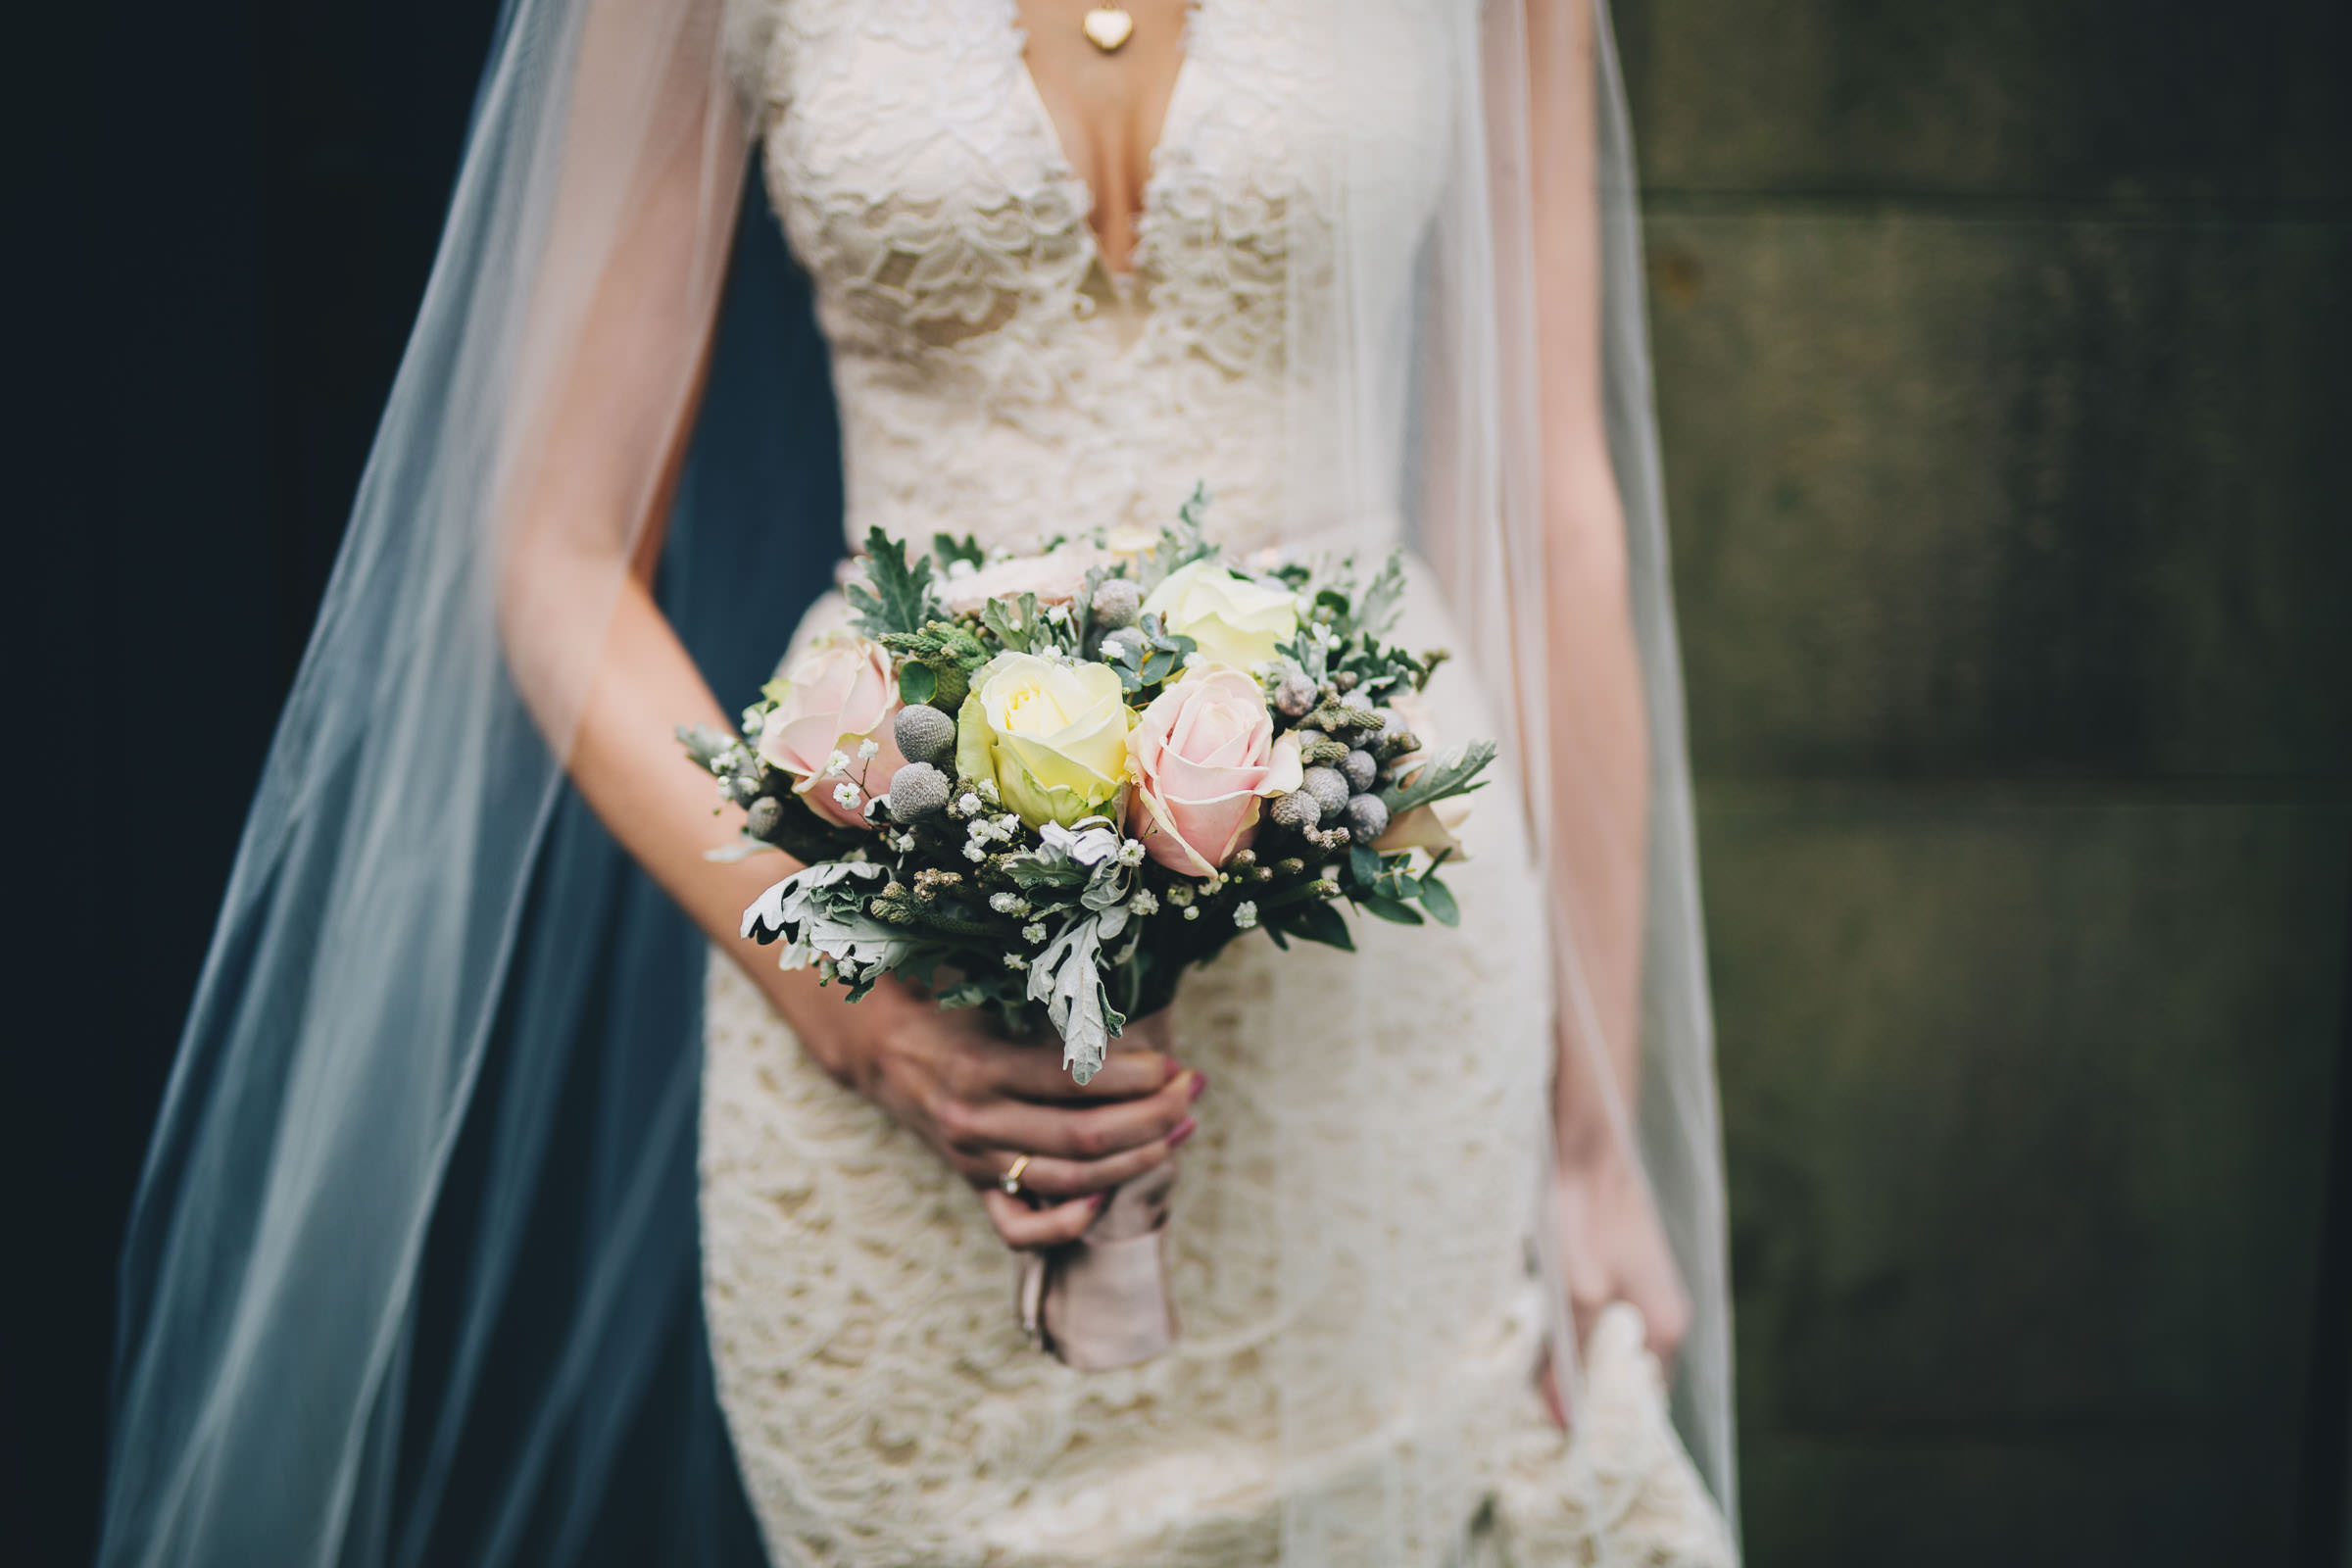 Close up of bride's bouquet - Combermere Abbey Wedding